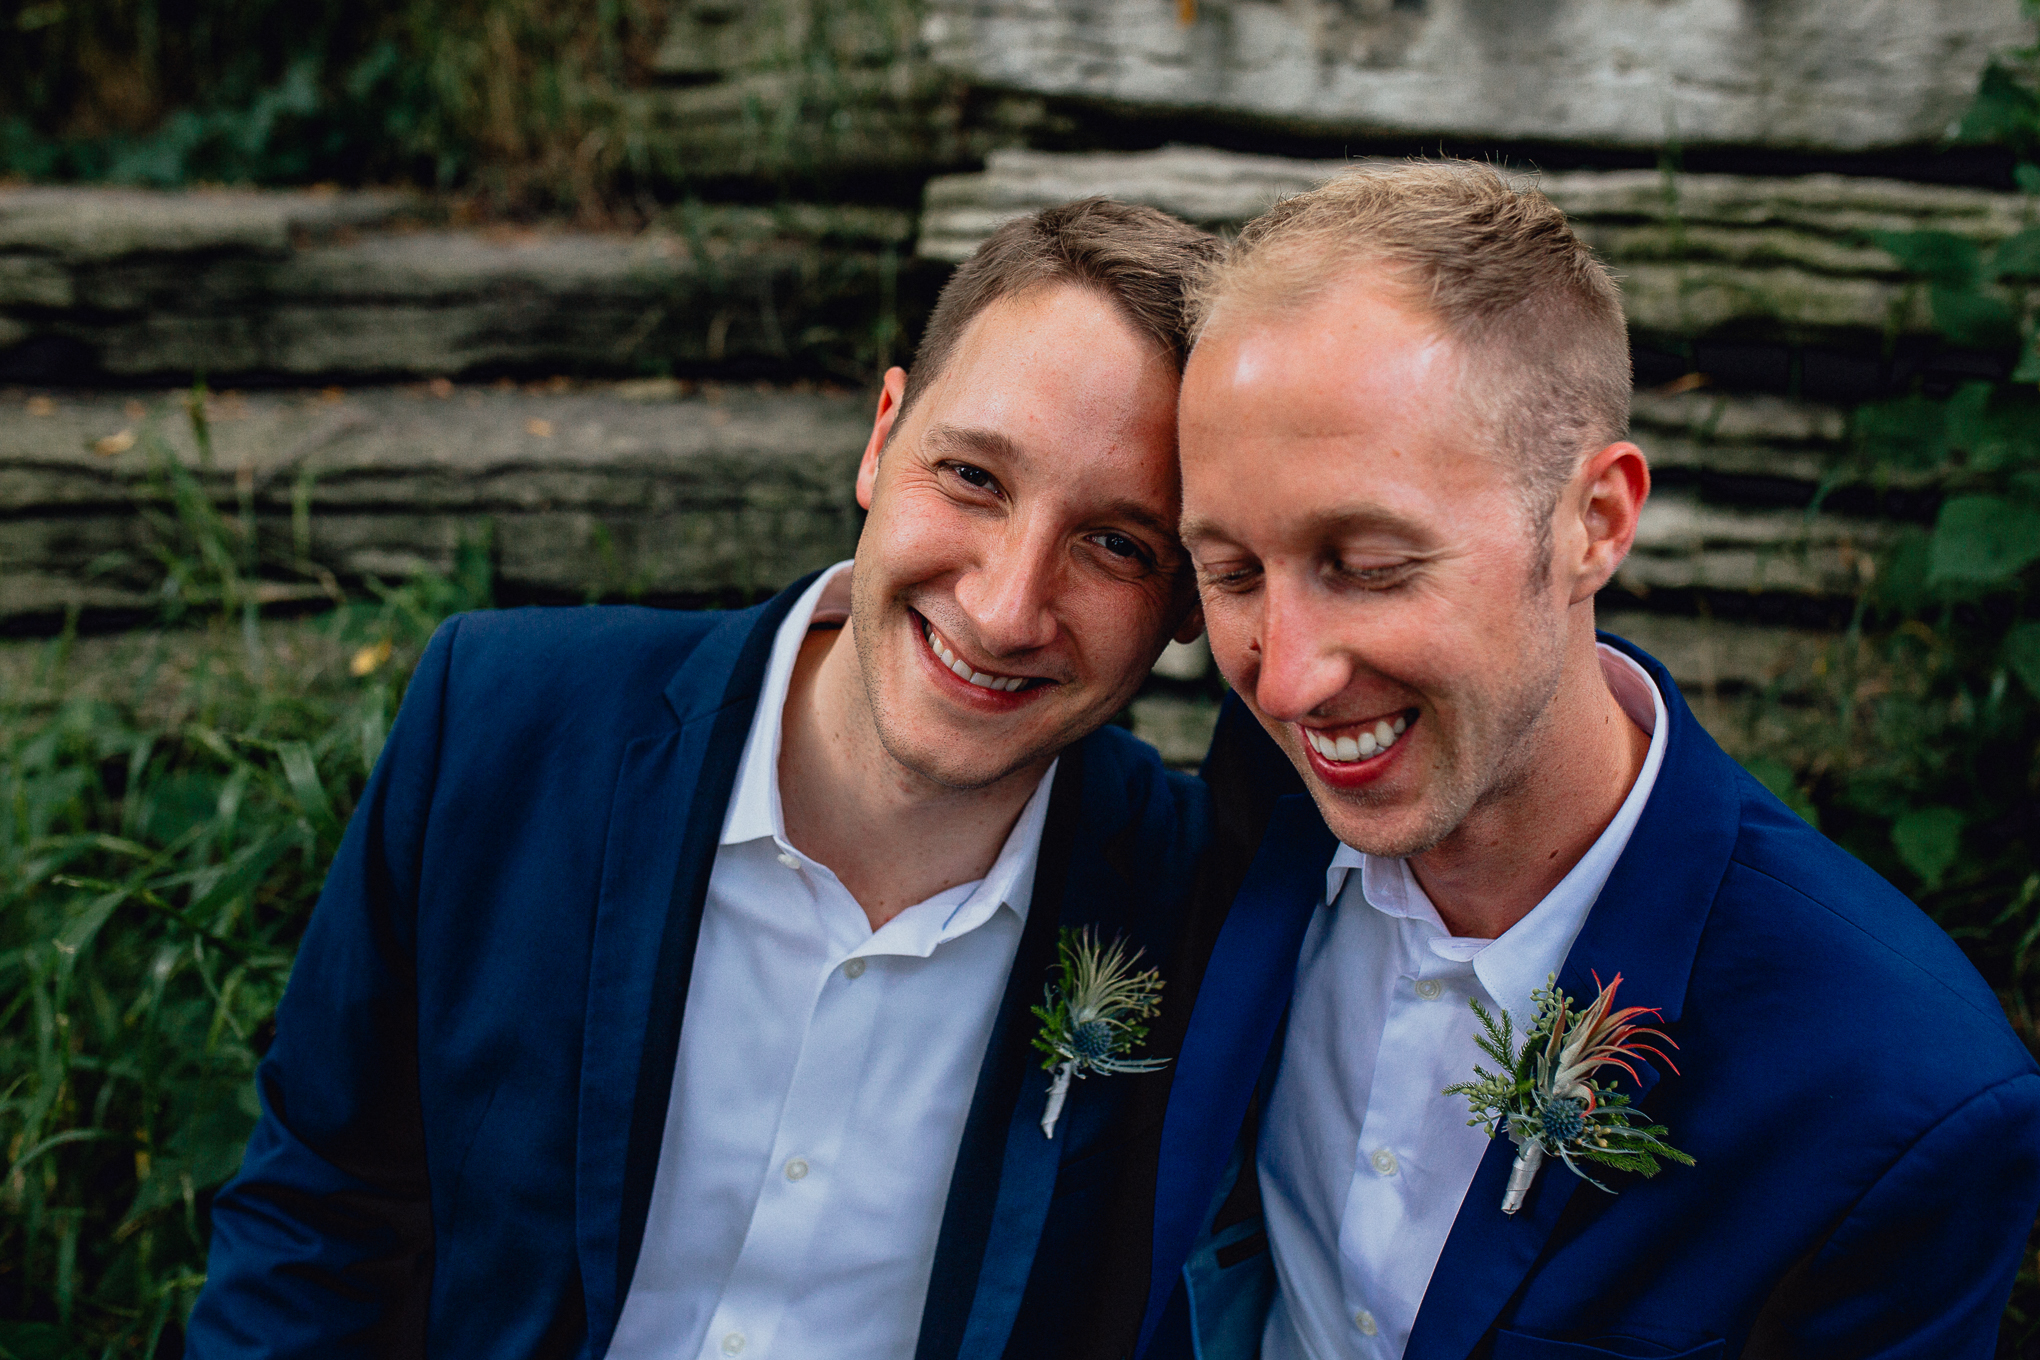 Grooms-laughing-Wedding-portrait-alfred-caldwell-lily-pool.jpg